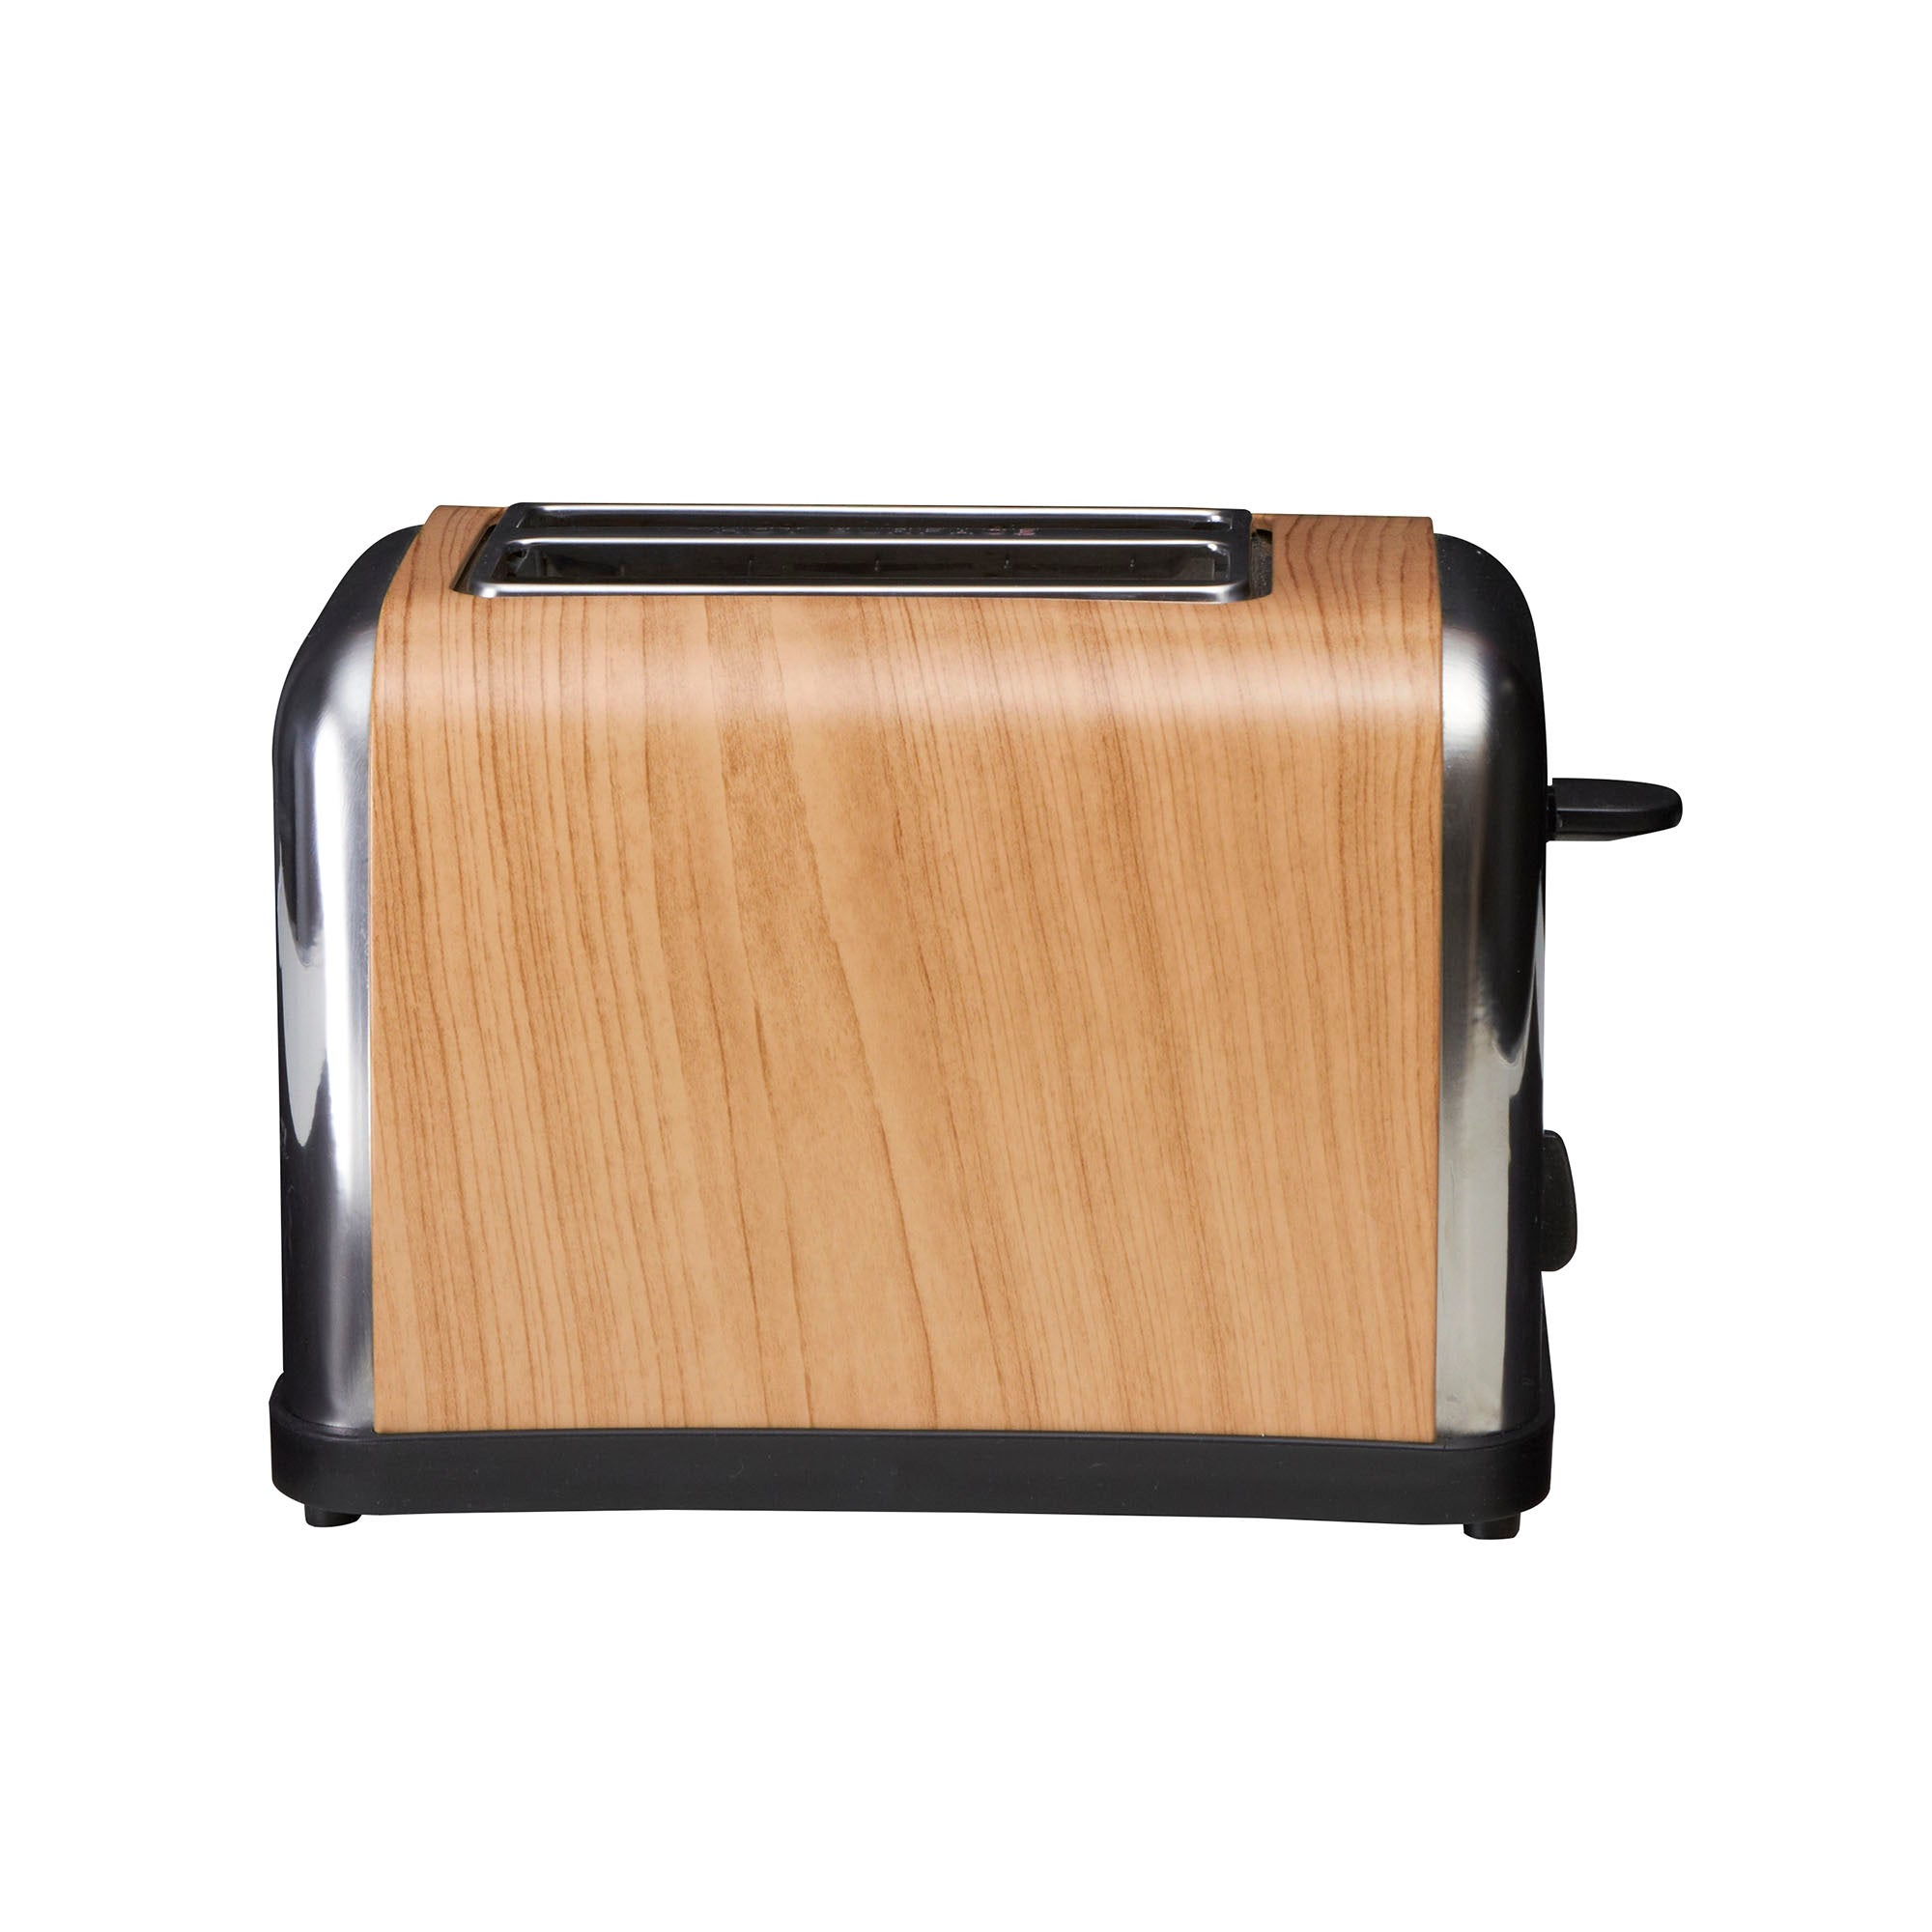 Wooden Printed 2 Slice Toaster